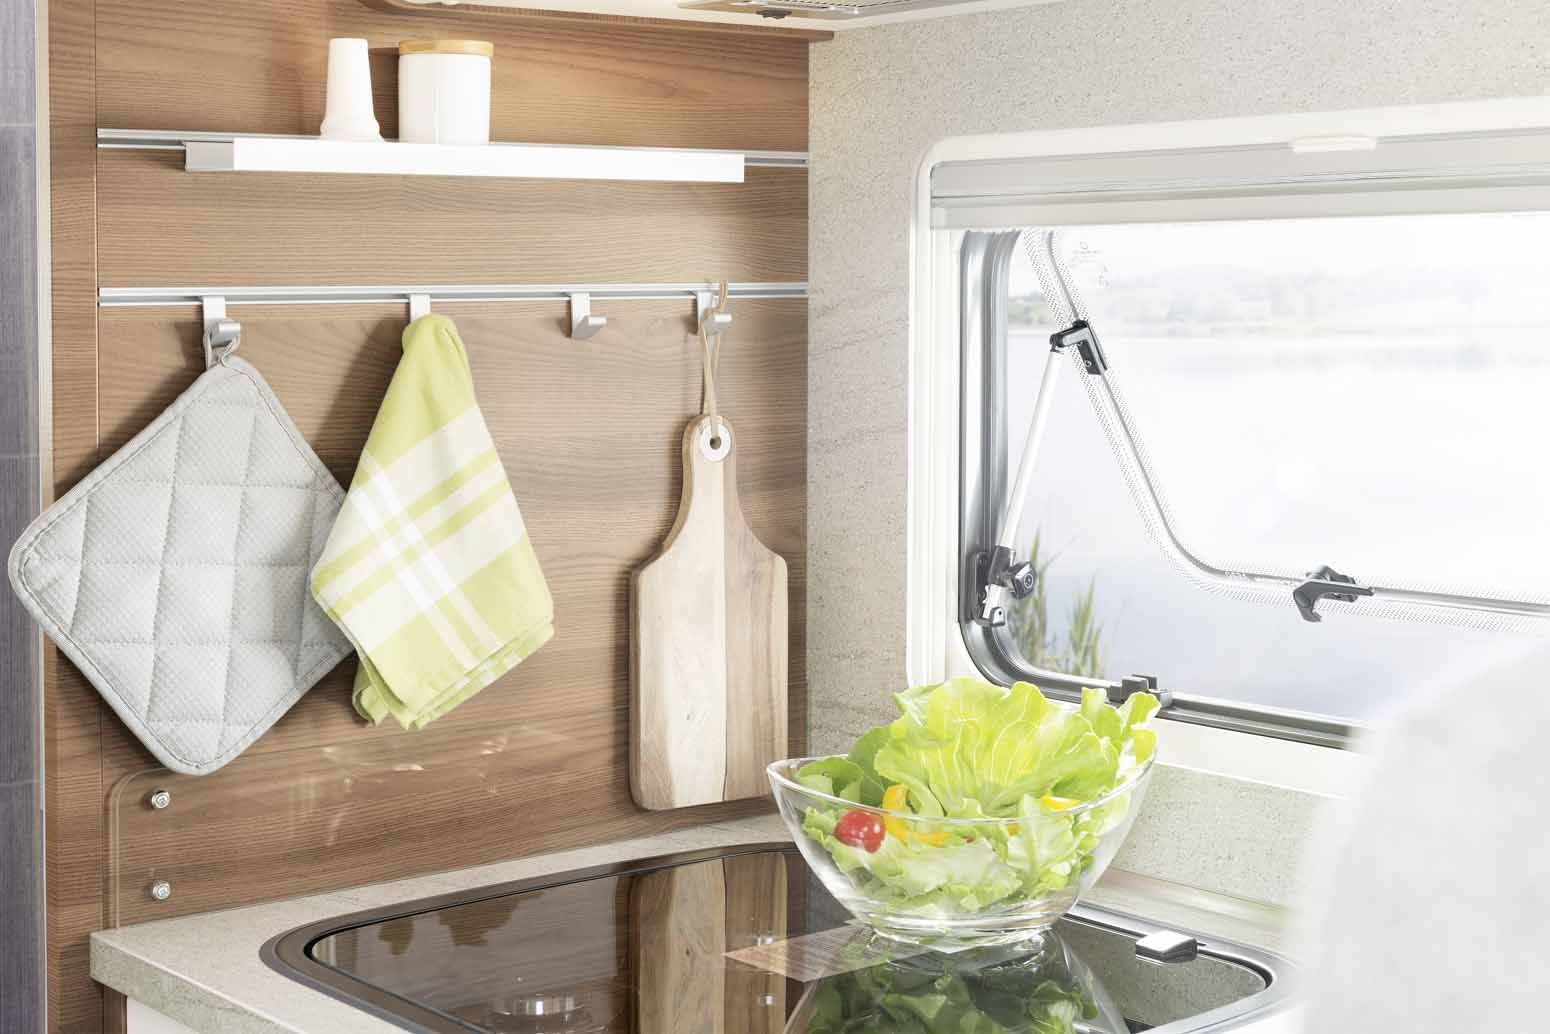 The kitchen boasts a range of practical and stylish solutions, such as the rail system